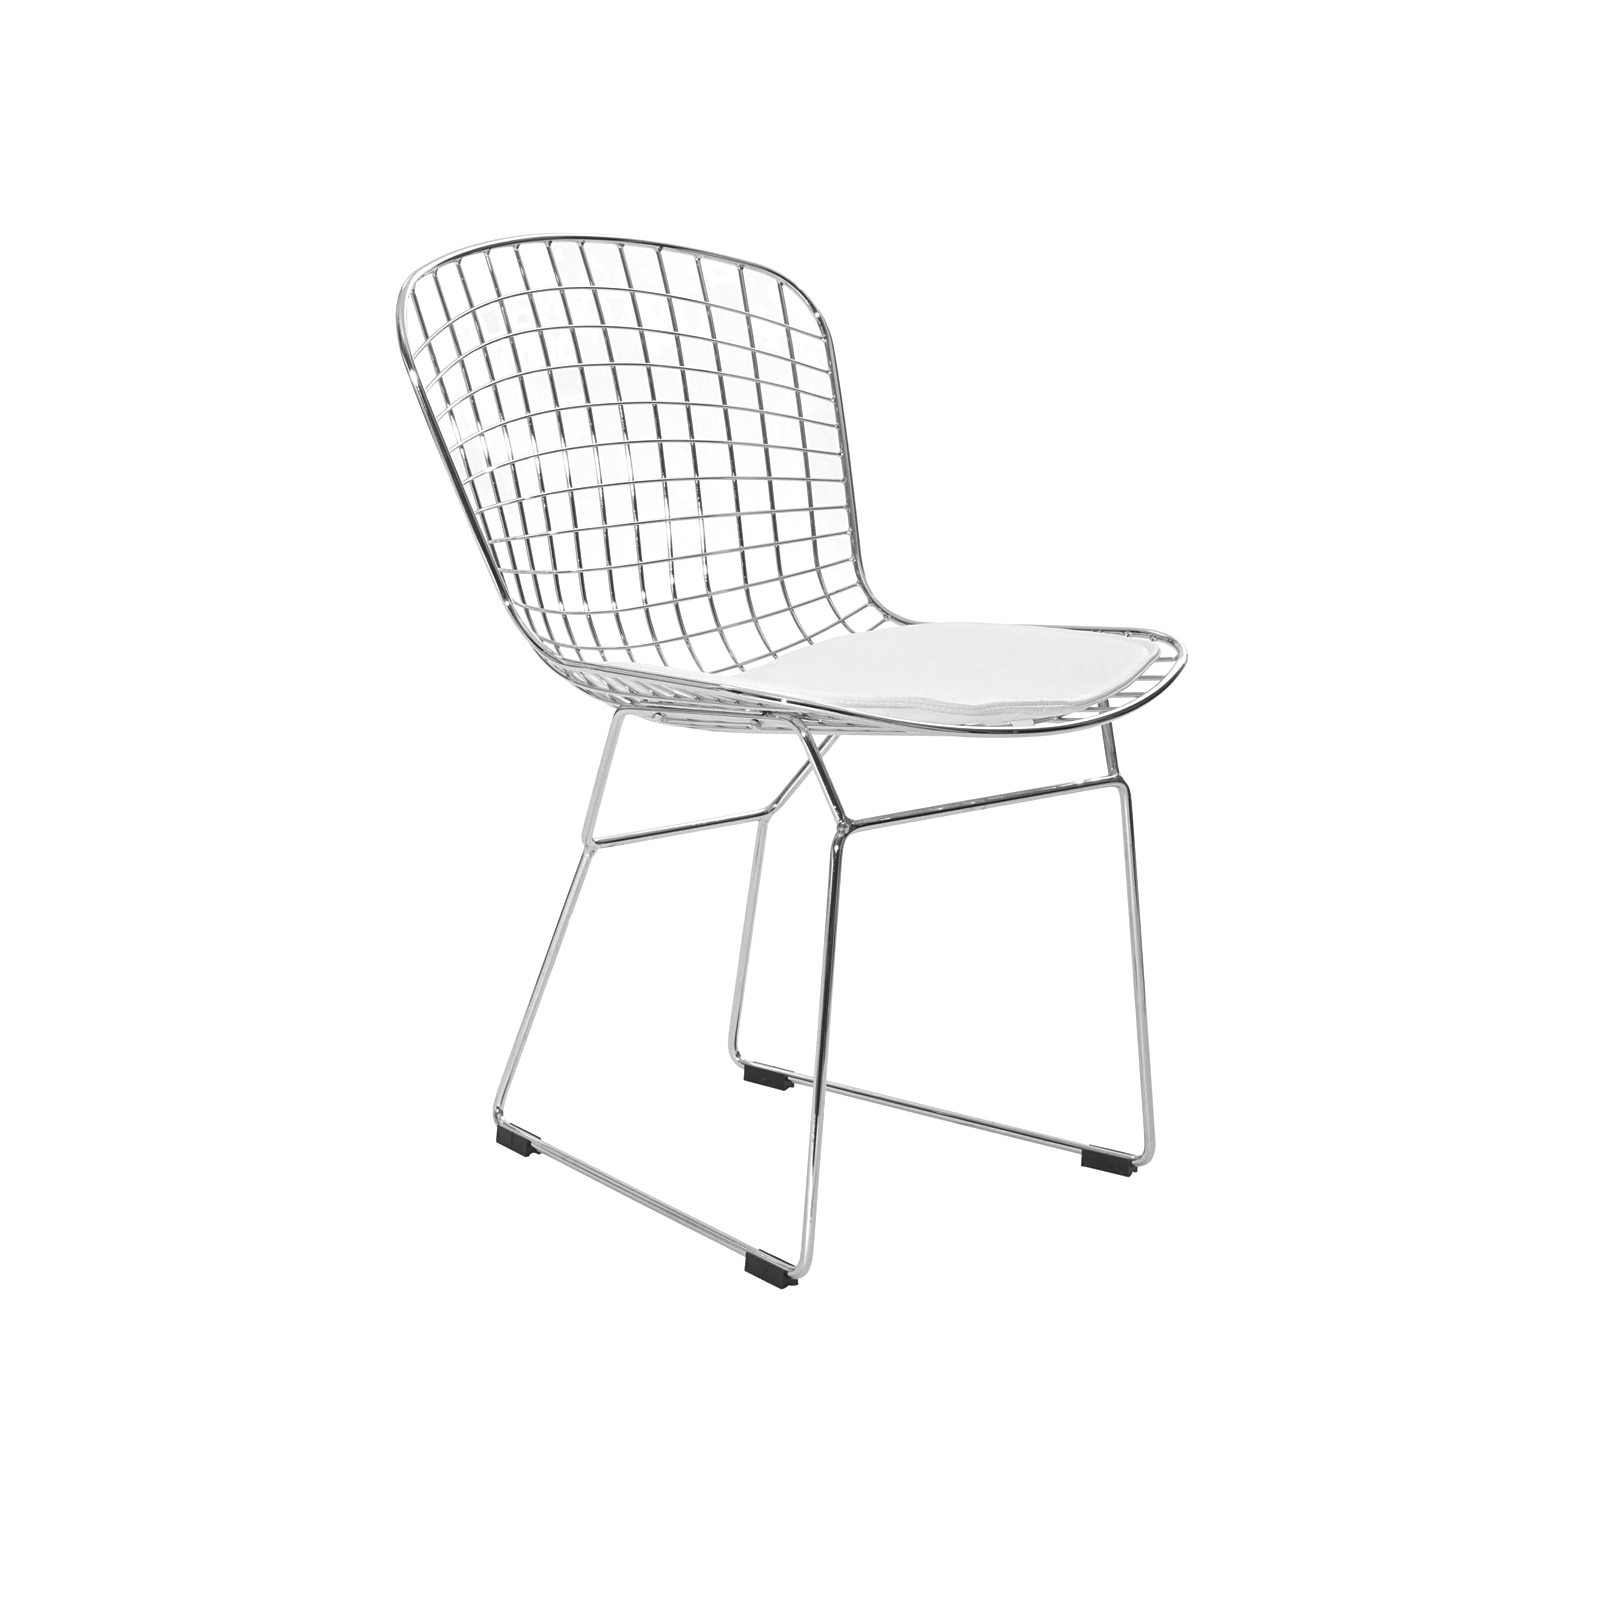 bertoia side chair zero gravity office uk rentals event furniture rental delivery